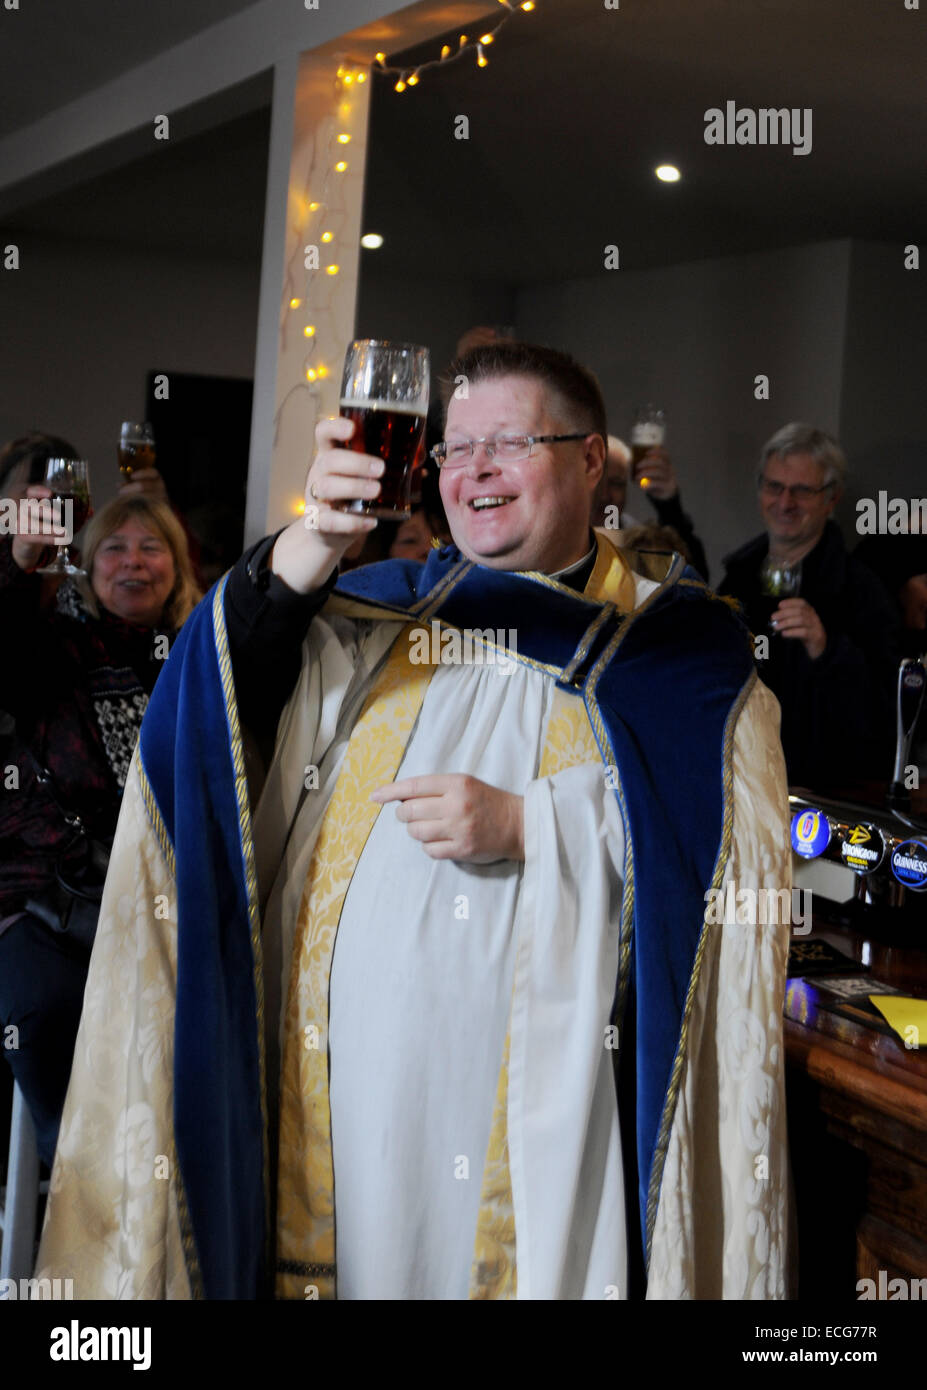 Brighton UK 12th December 2014 - Local Moulsecoomb vicar Father John Hall blesses the newly refurbished Bevy pub - Stock Image